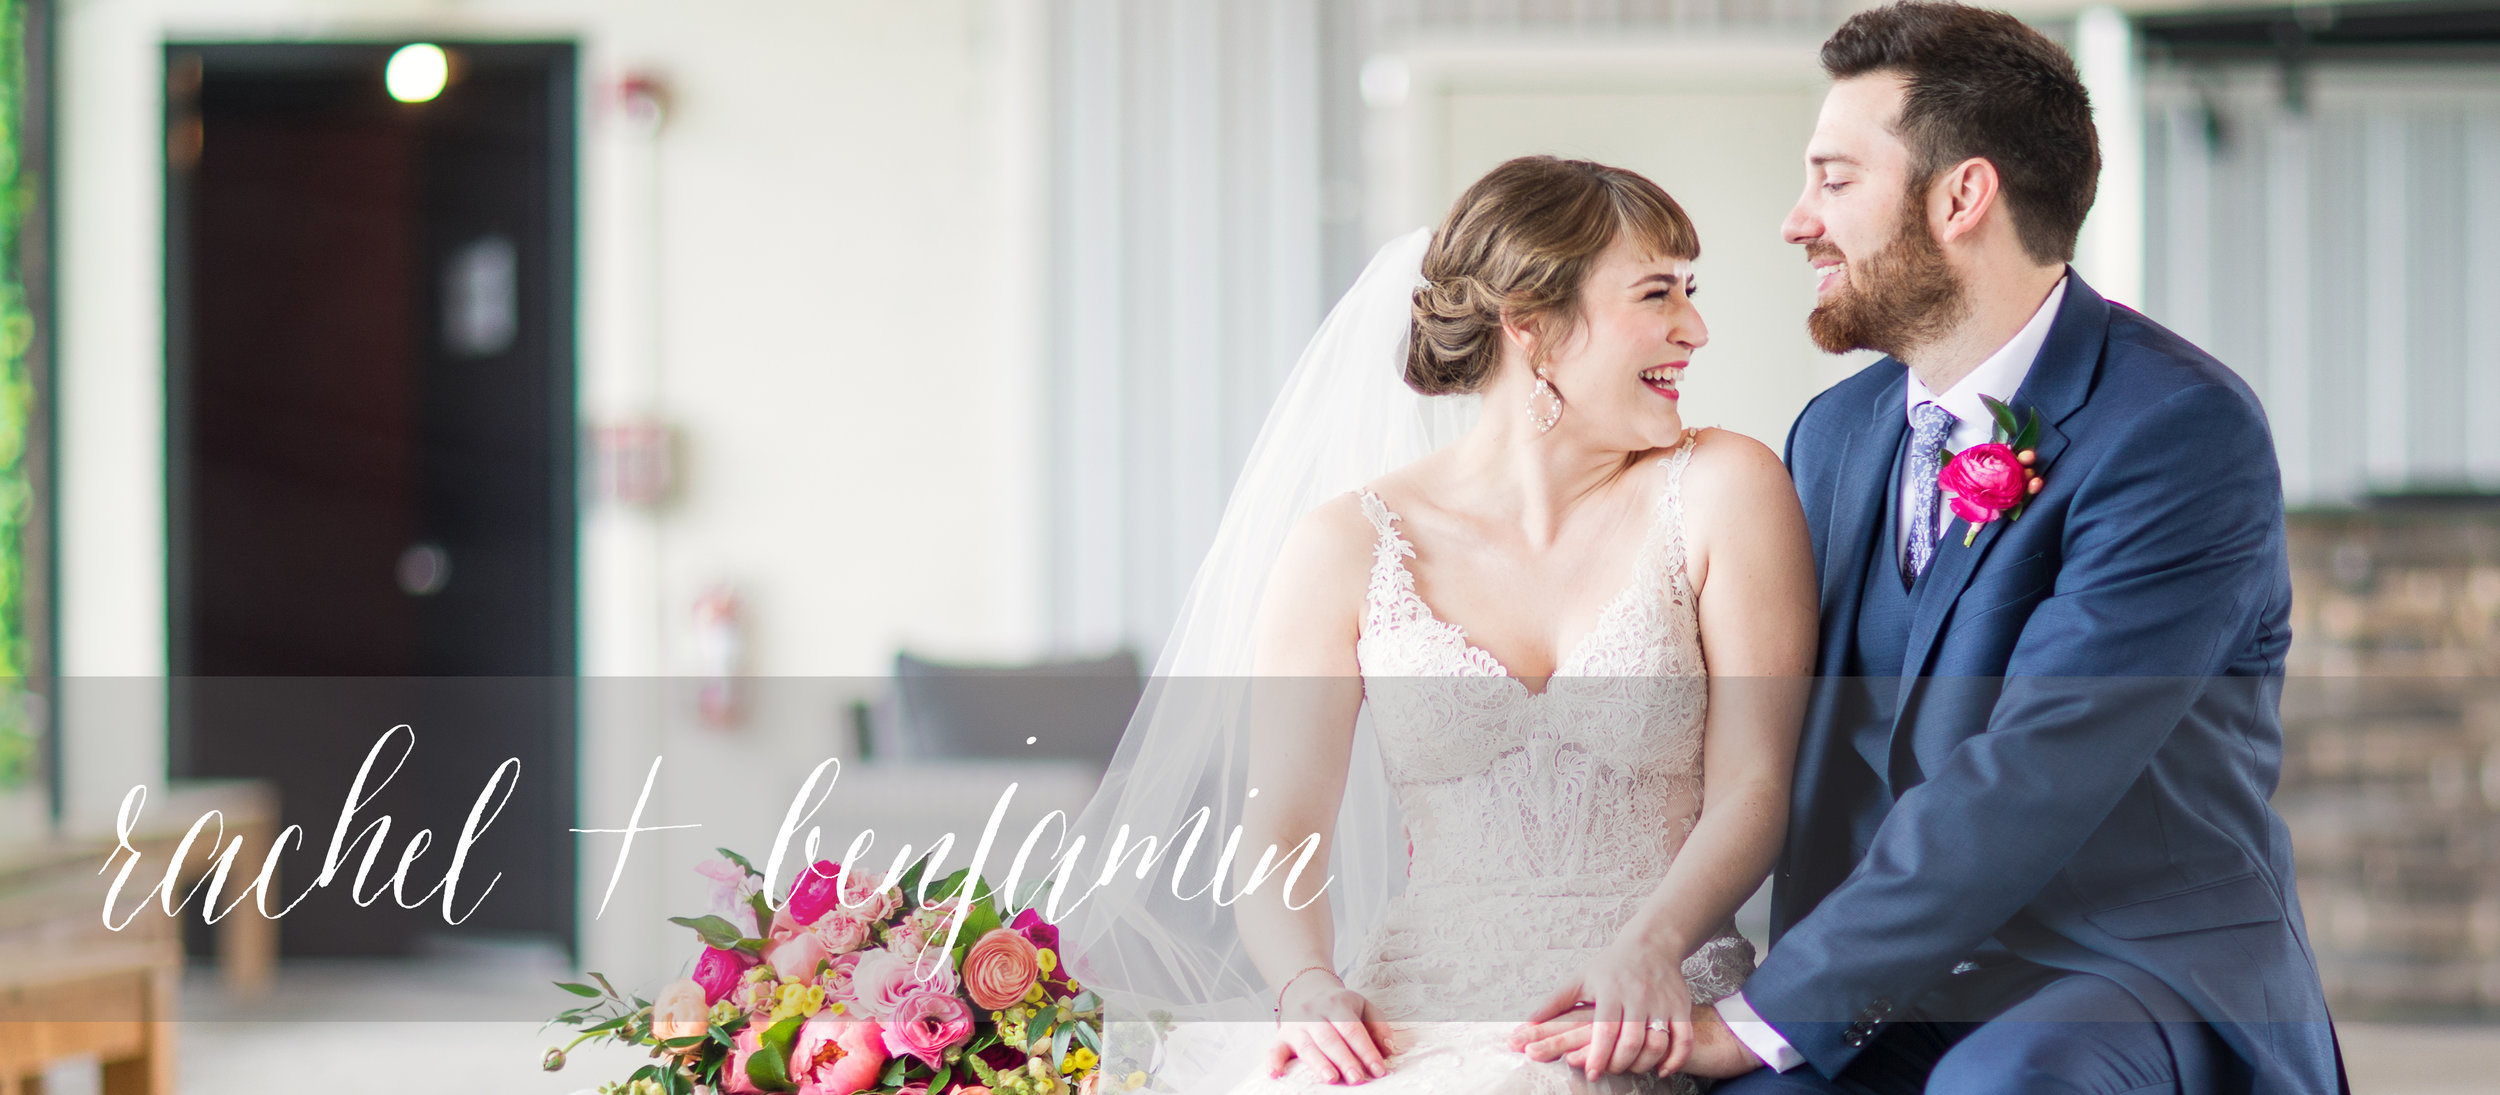 best washington dc wedding photographers emotion color story